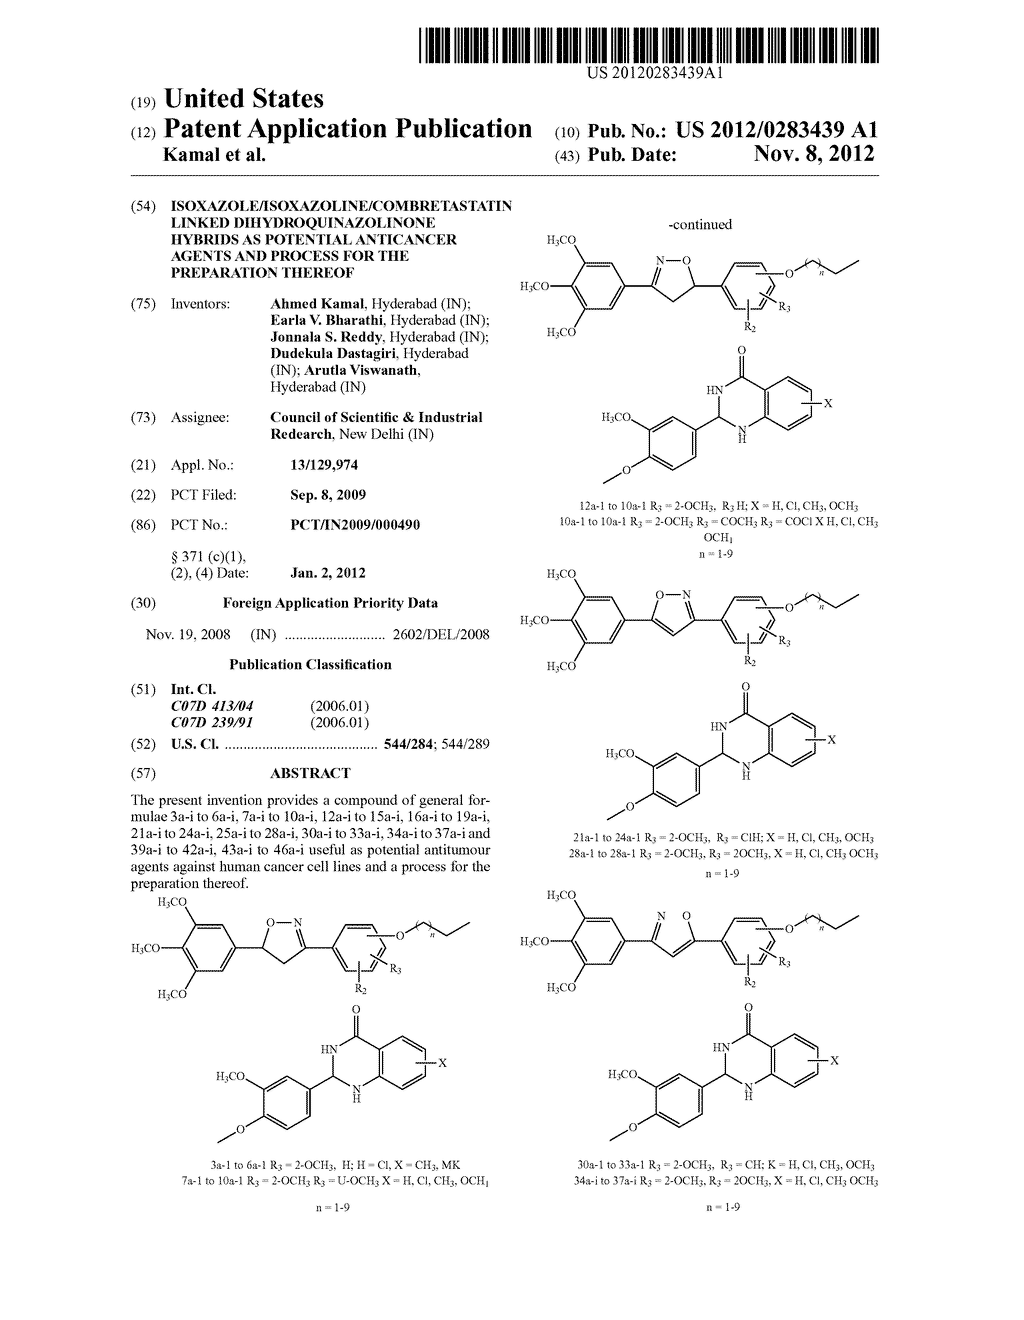 ISOXAZOLE/ISOXAZOLINE/COMBRETASTATIN LINKED DIHYDROQUINAZOLINONE HYBRIDS     AS POTENTIAL ANTICANCER AGENTS AND PROCESS FOR THE PREPARATION THEREOF - diagram, schematic, and image 01